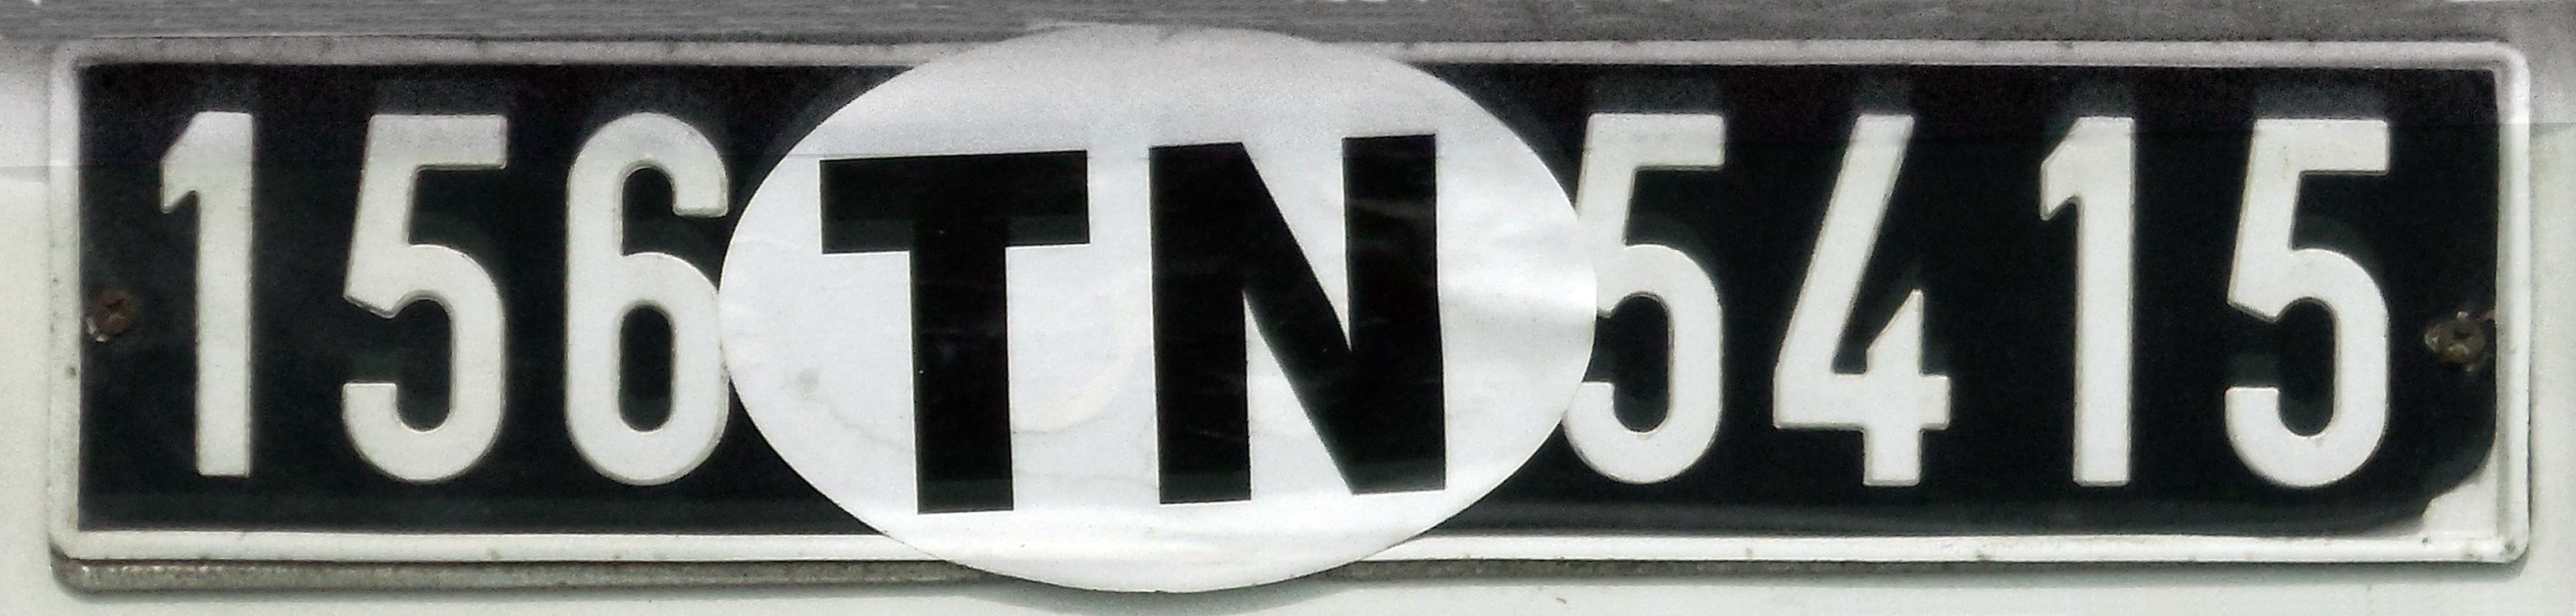 File:Tunisian license plate with TN international vehicle ...